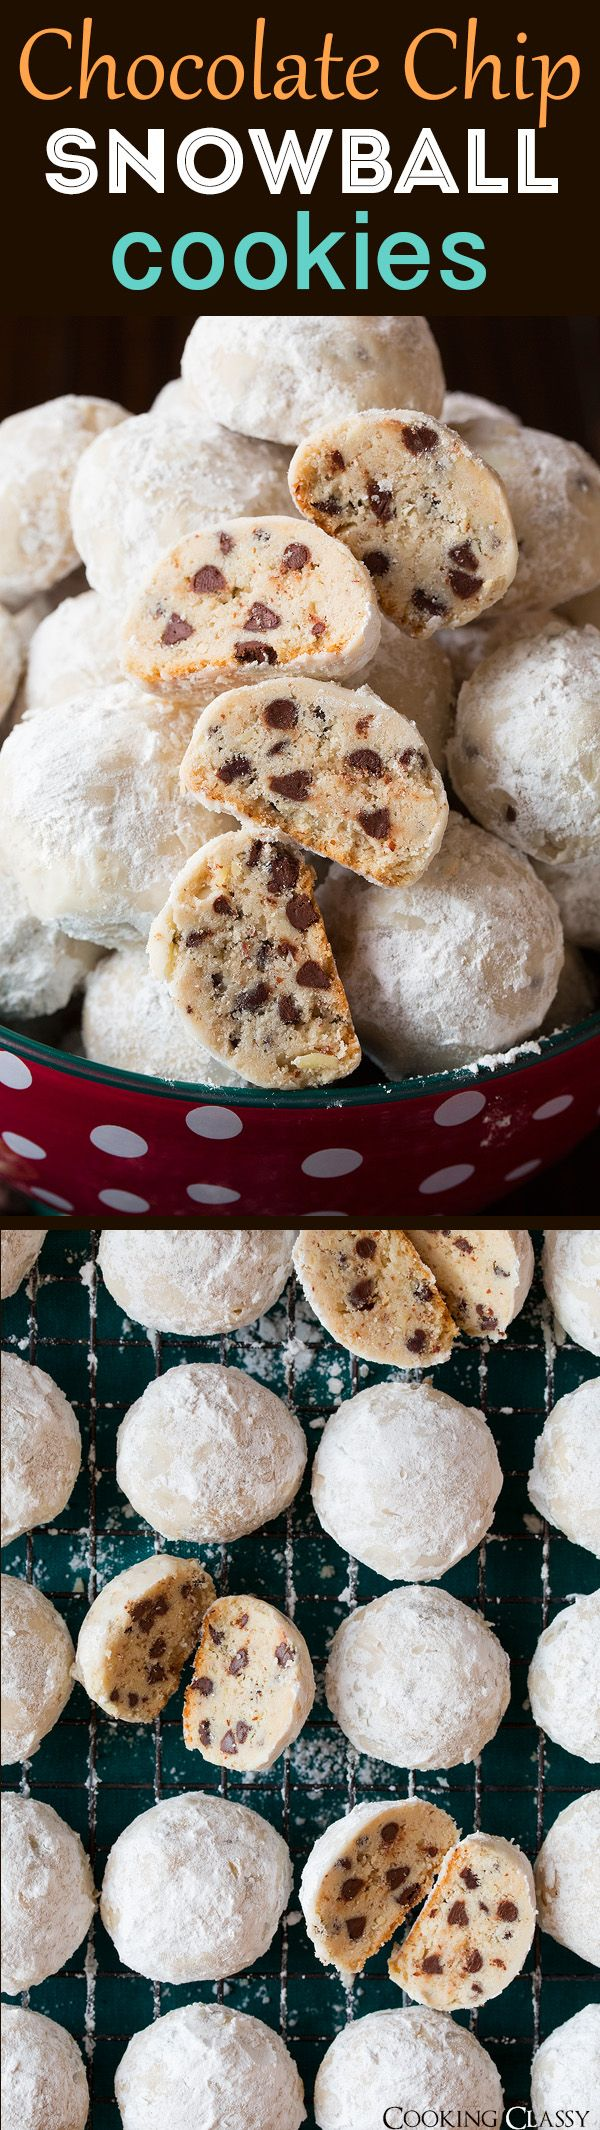 Chocolate Chip Snowball Cookies - 100% irresistible! Good luck with these ones!